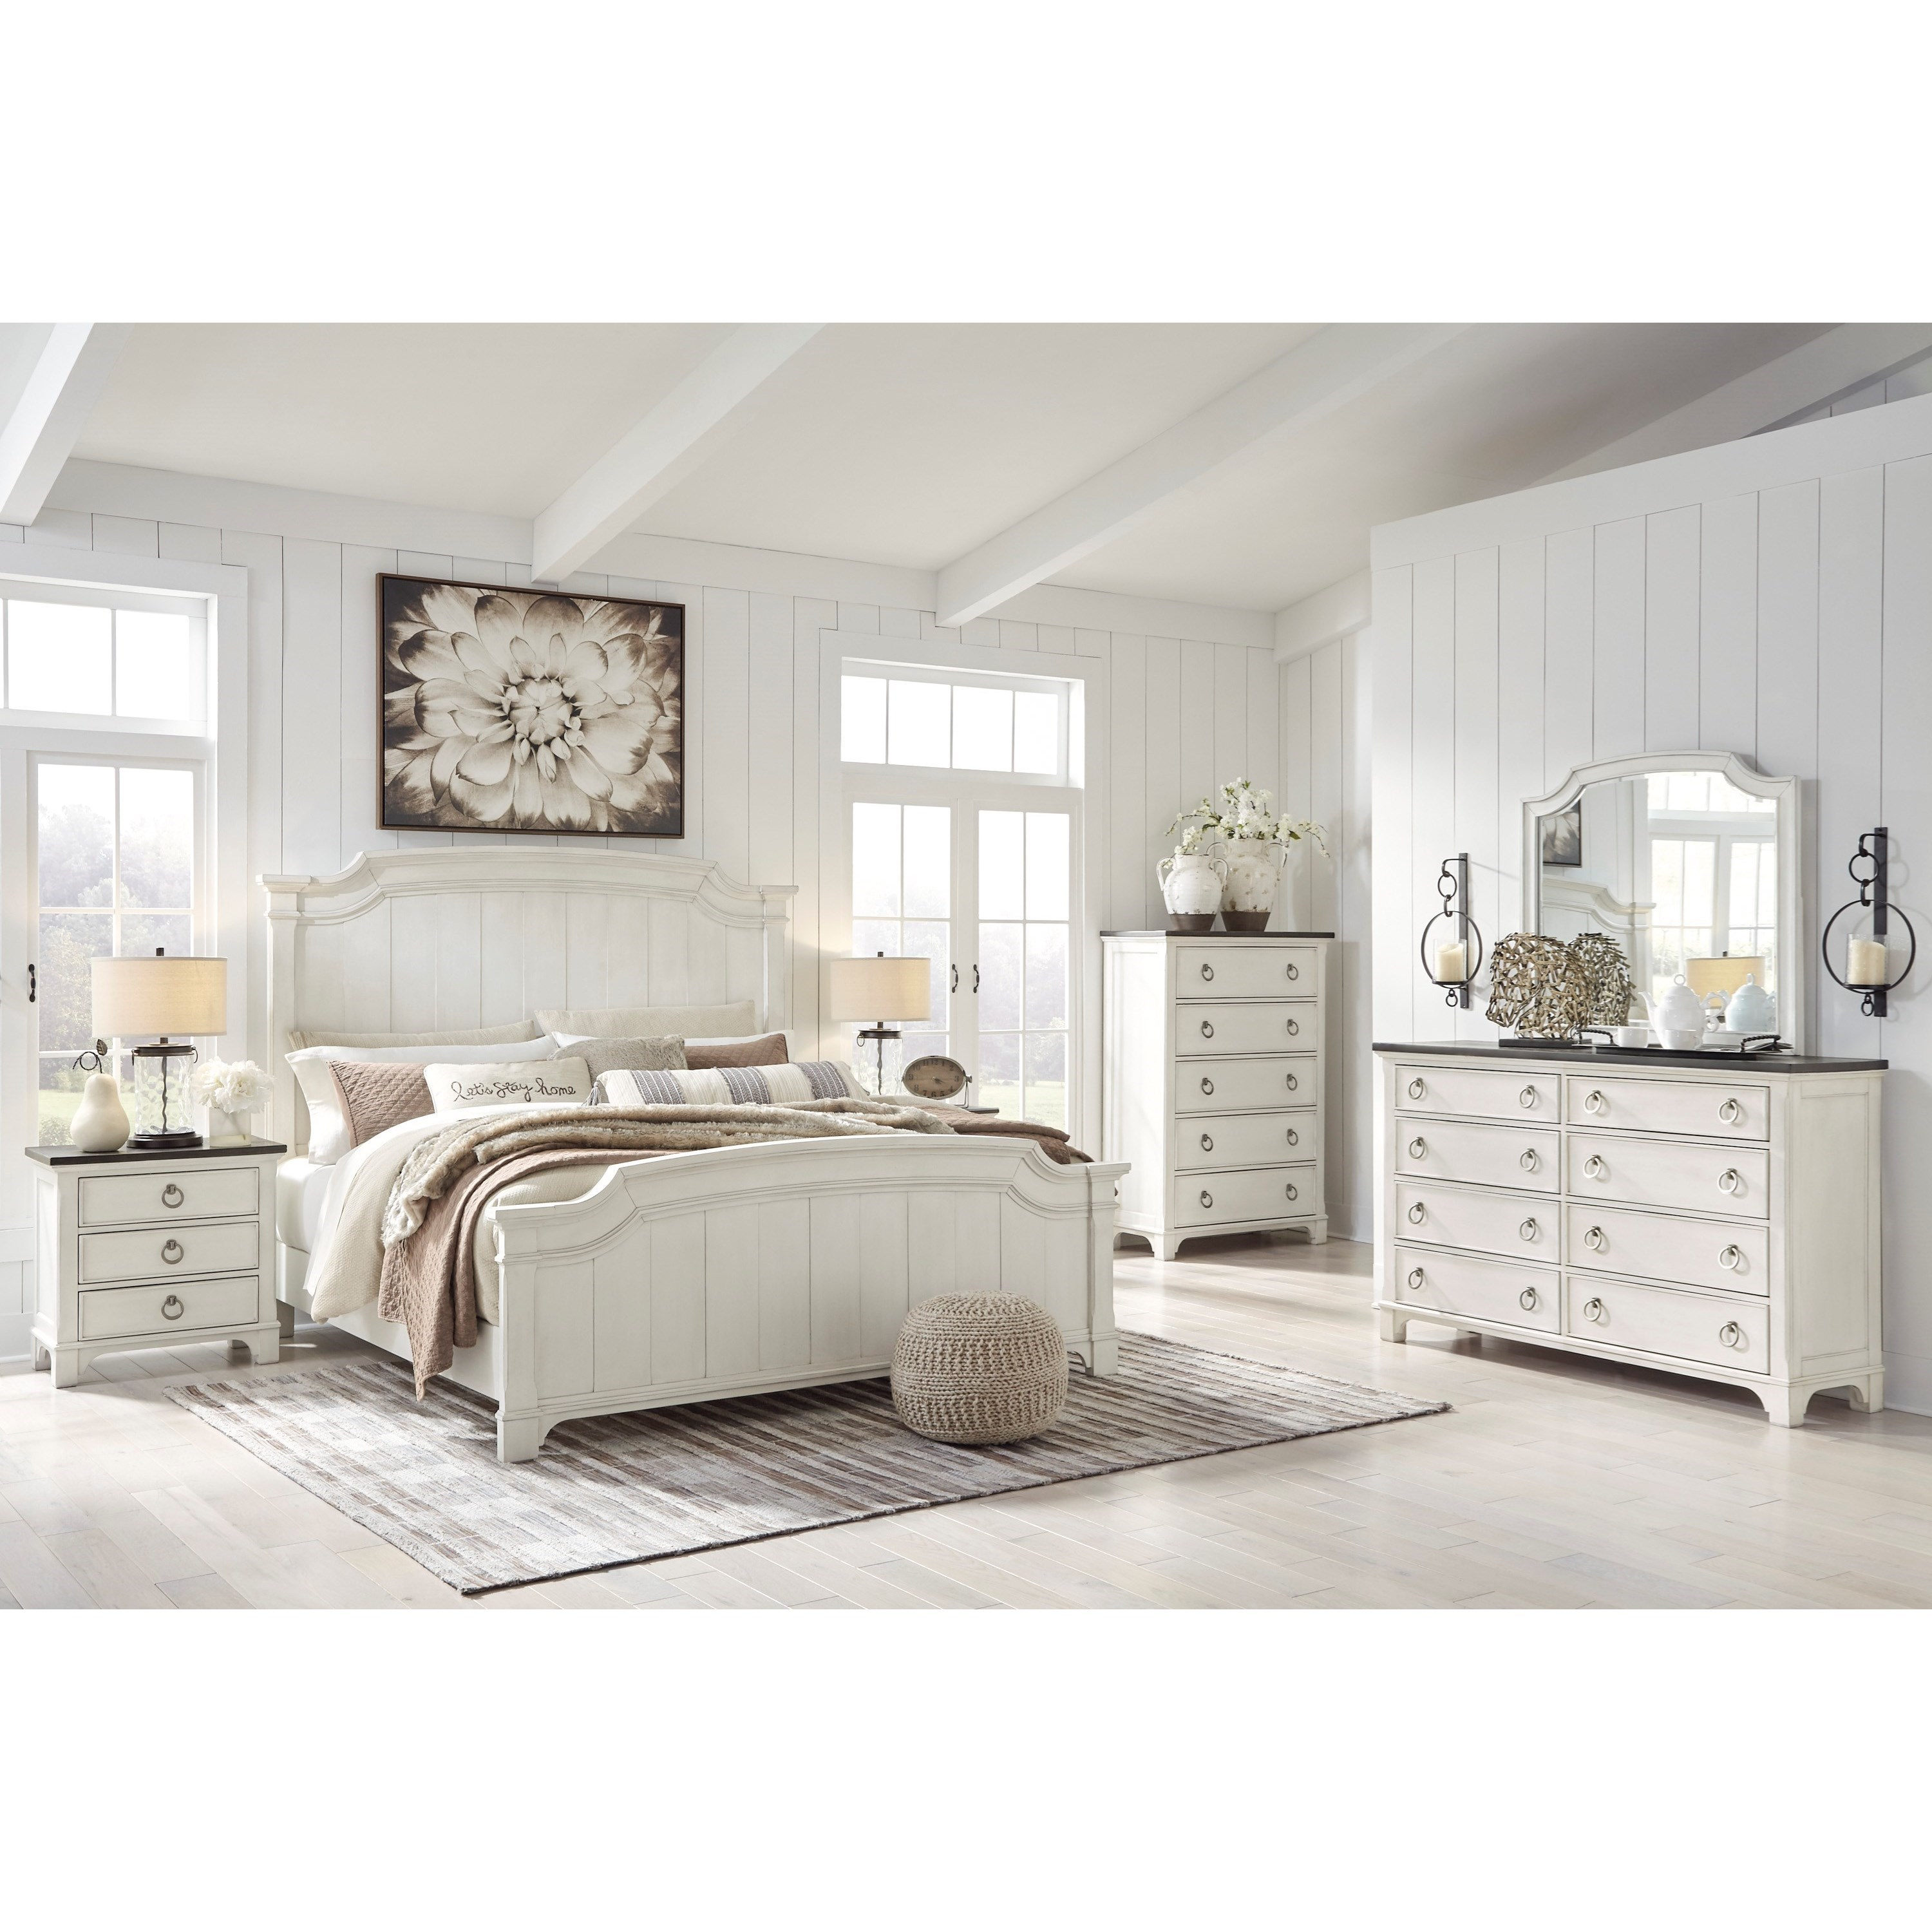 Nashbryn Queen Bedroom Group by Benchcraft at Miller Waldrop Furniture and Decor